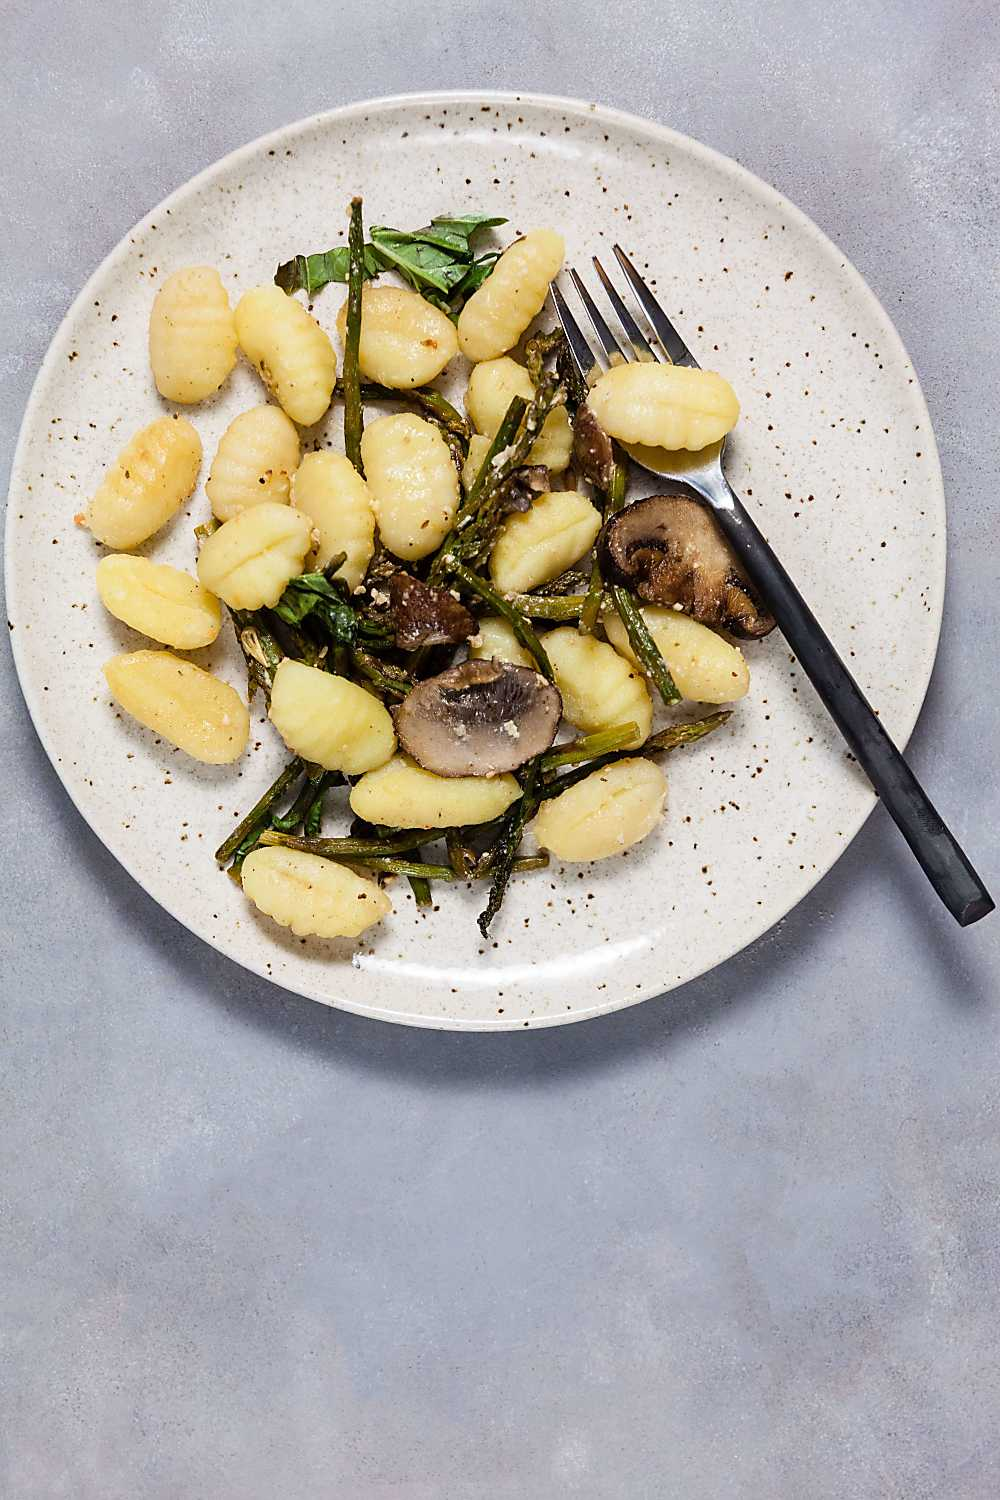 Lemon-Parmesan Gnocchi with Mushrooms (Sheet Pan Dinner)